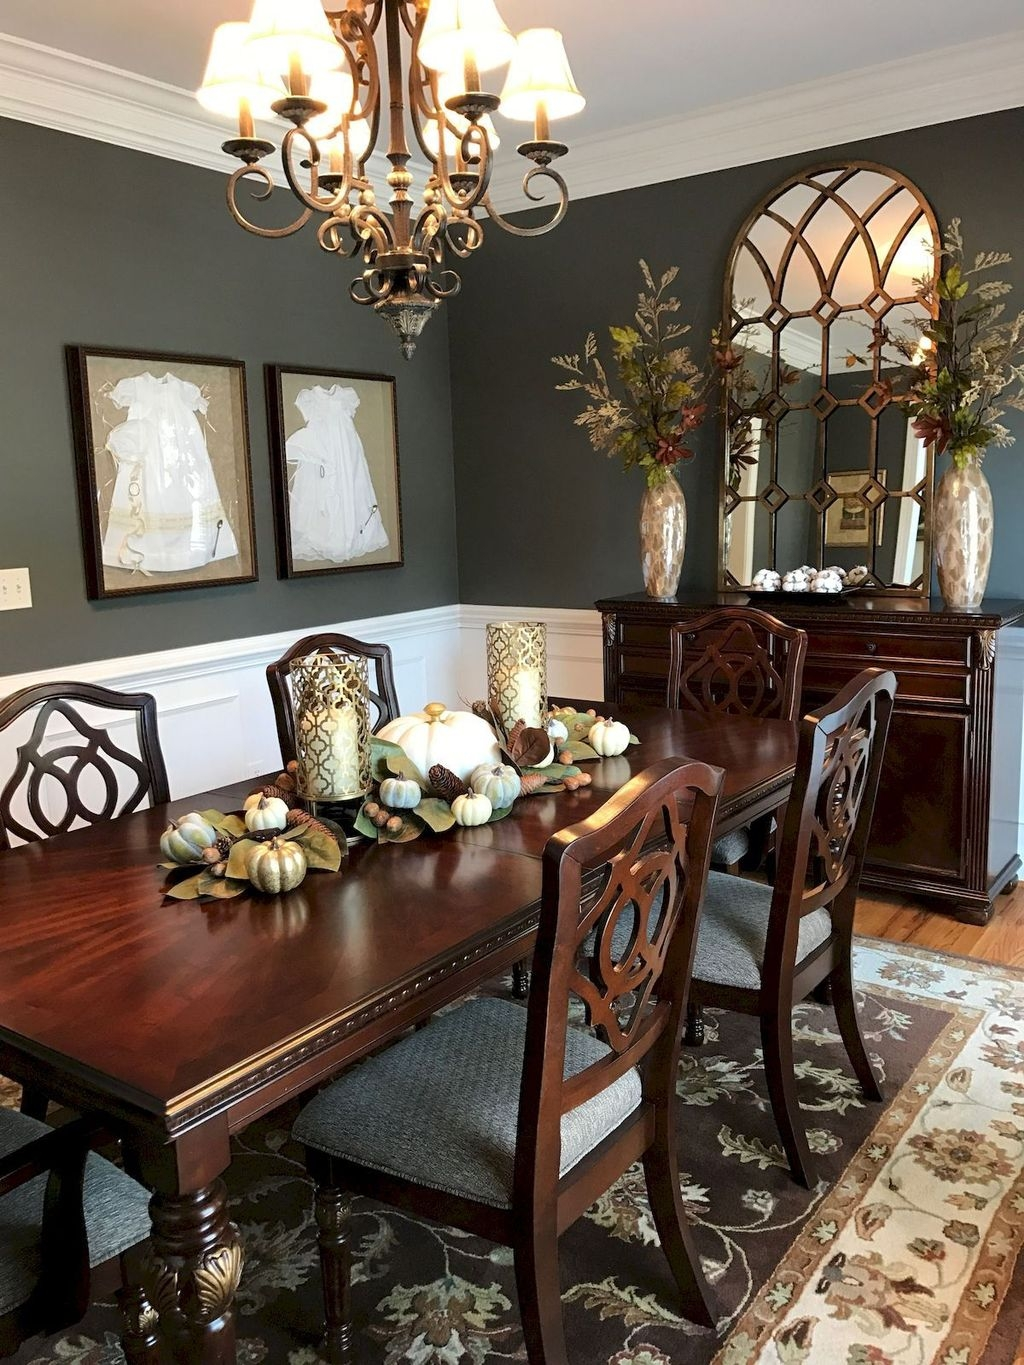 Popular Farmhouse Dining Room Design Ideas Trend 2019 28